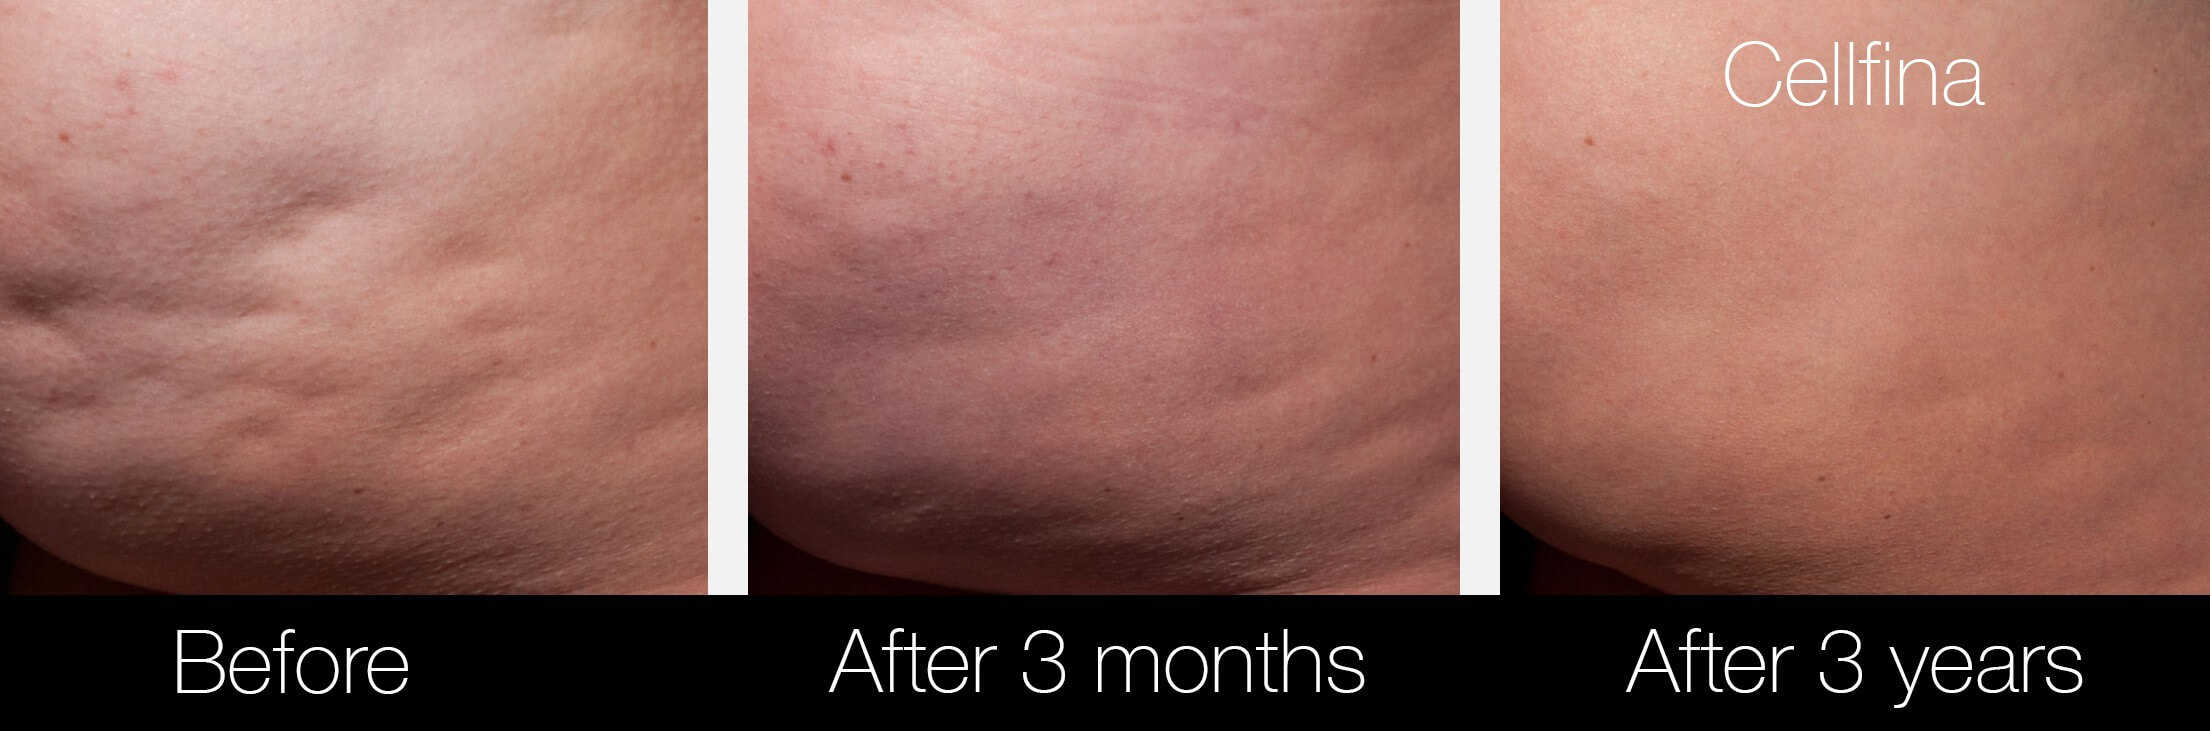 Cellfina Cellulite Treatment - Before and After Gallery – Photo 6